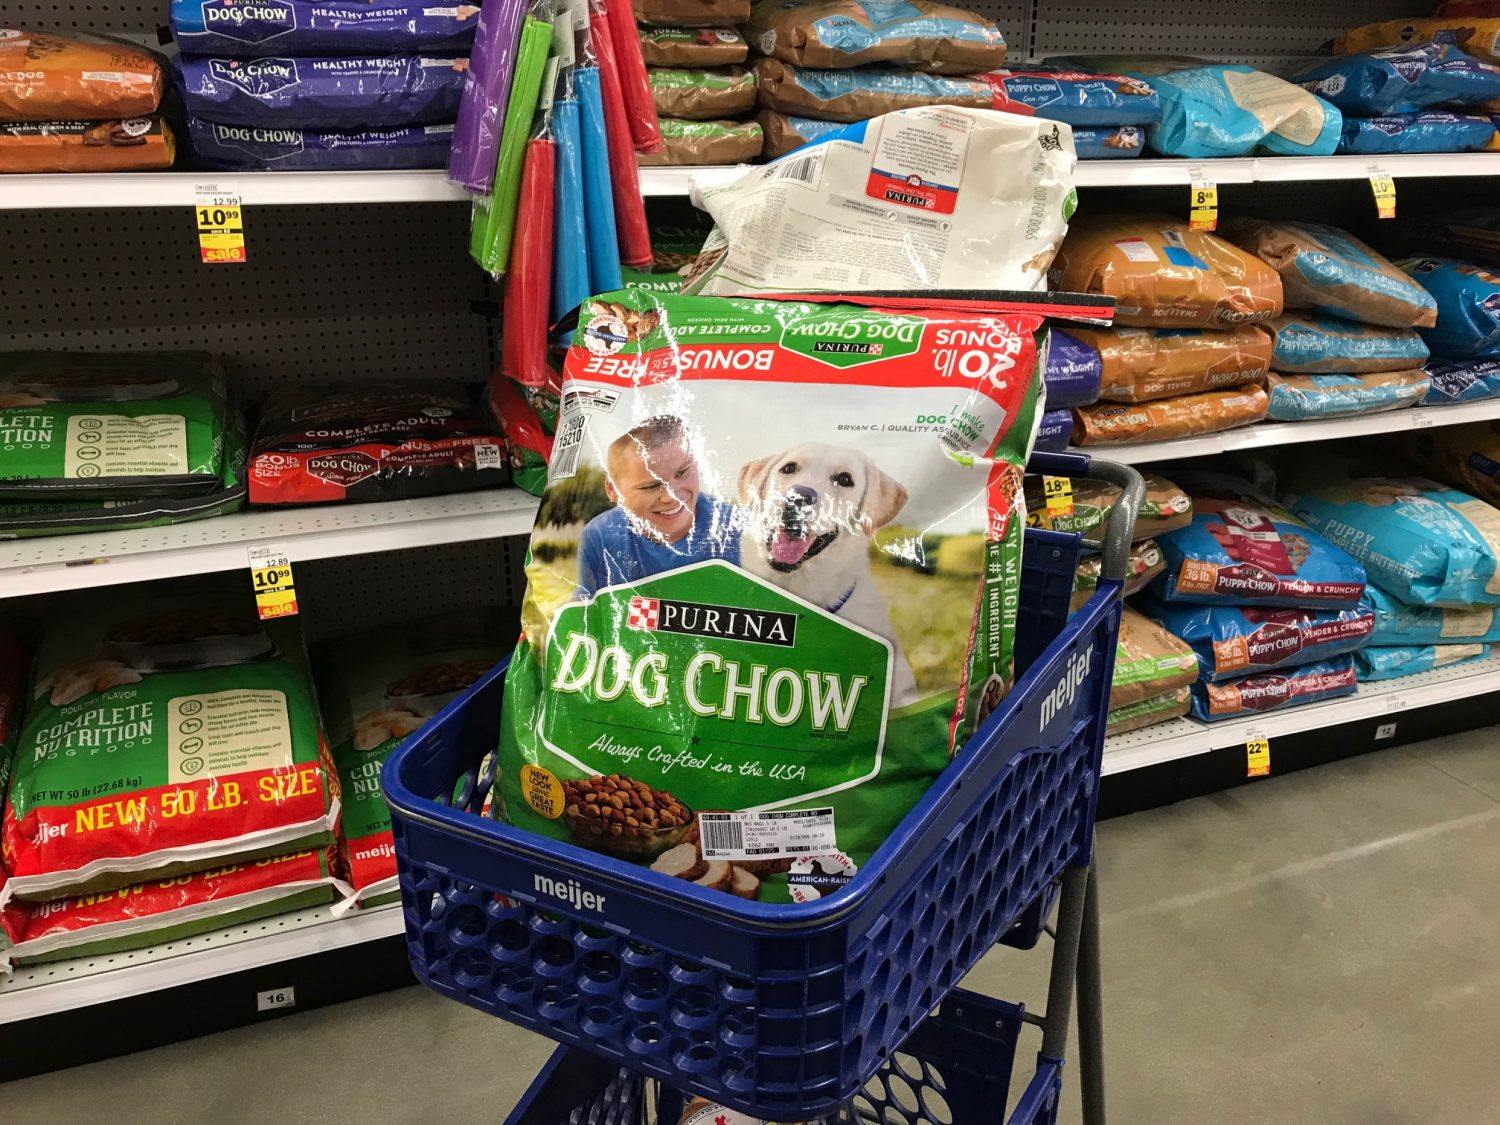 Purina Dog Chow Complete Adult with Real Chicken Dog Food